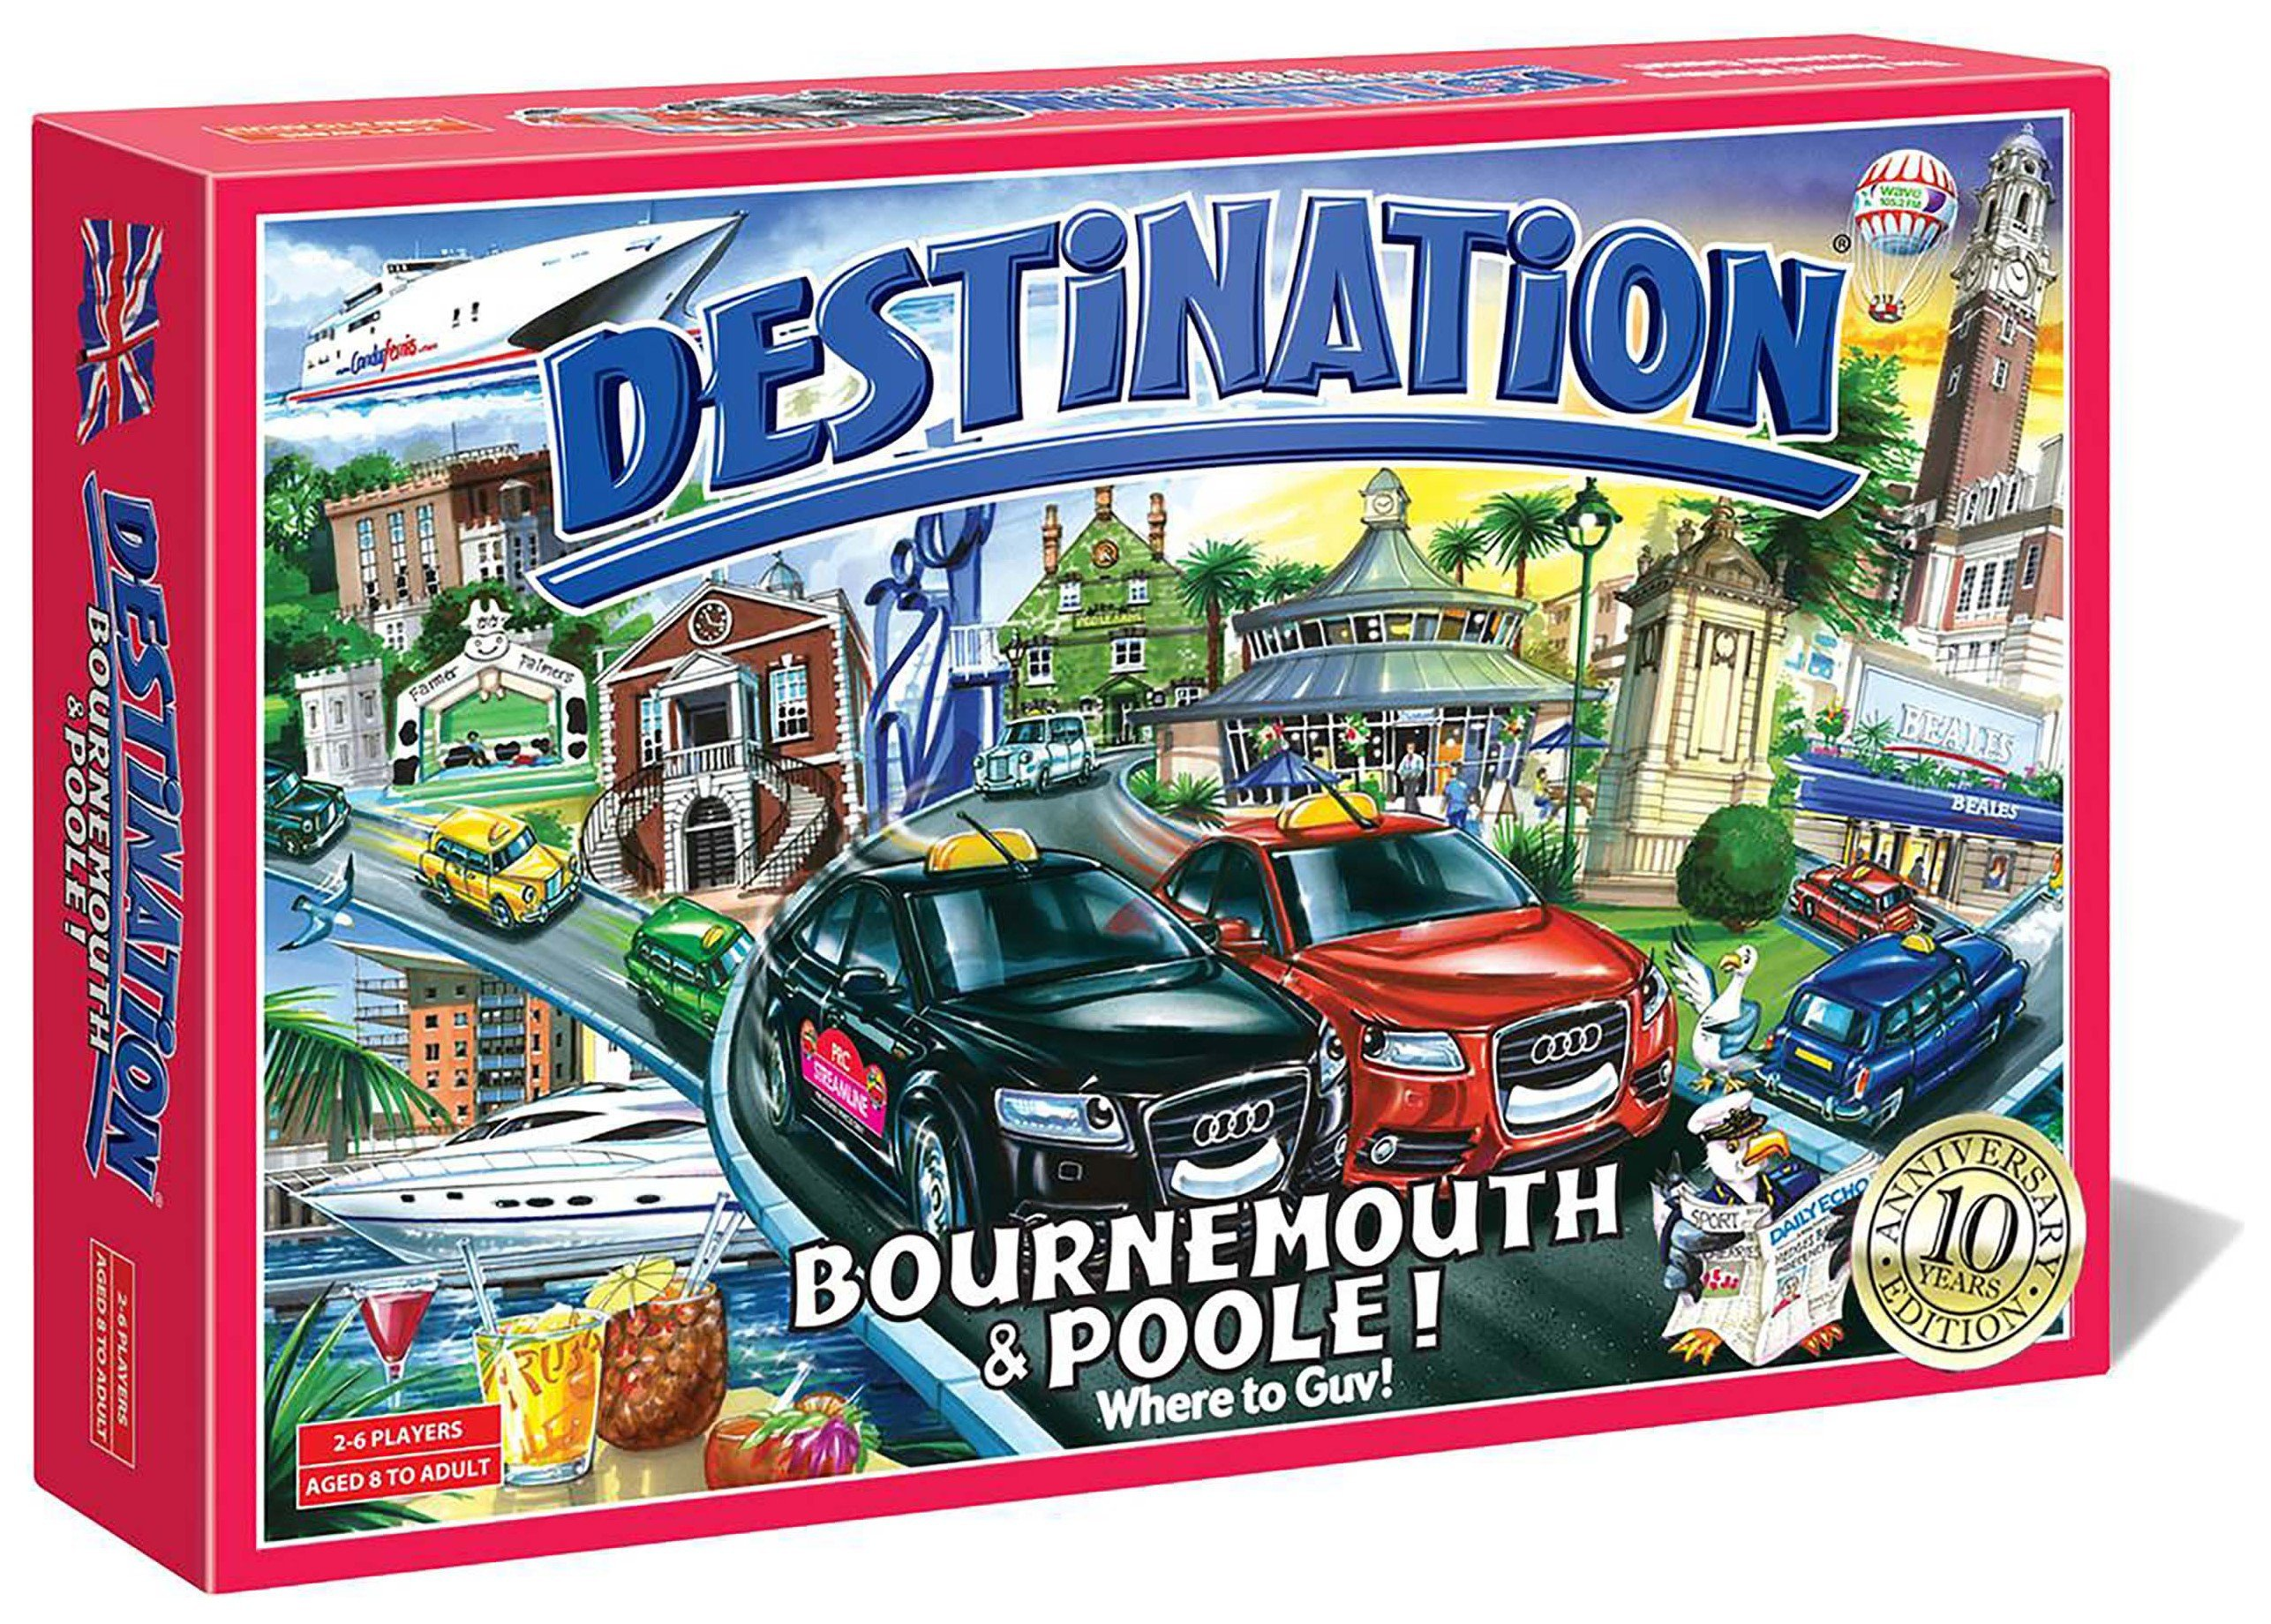 Image of Destination Bournemouth and Poole Board Game.